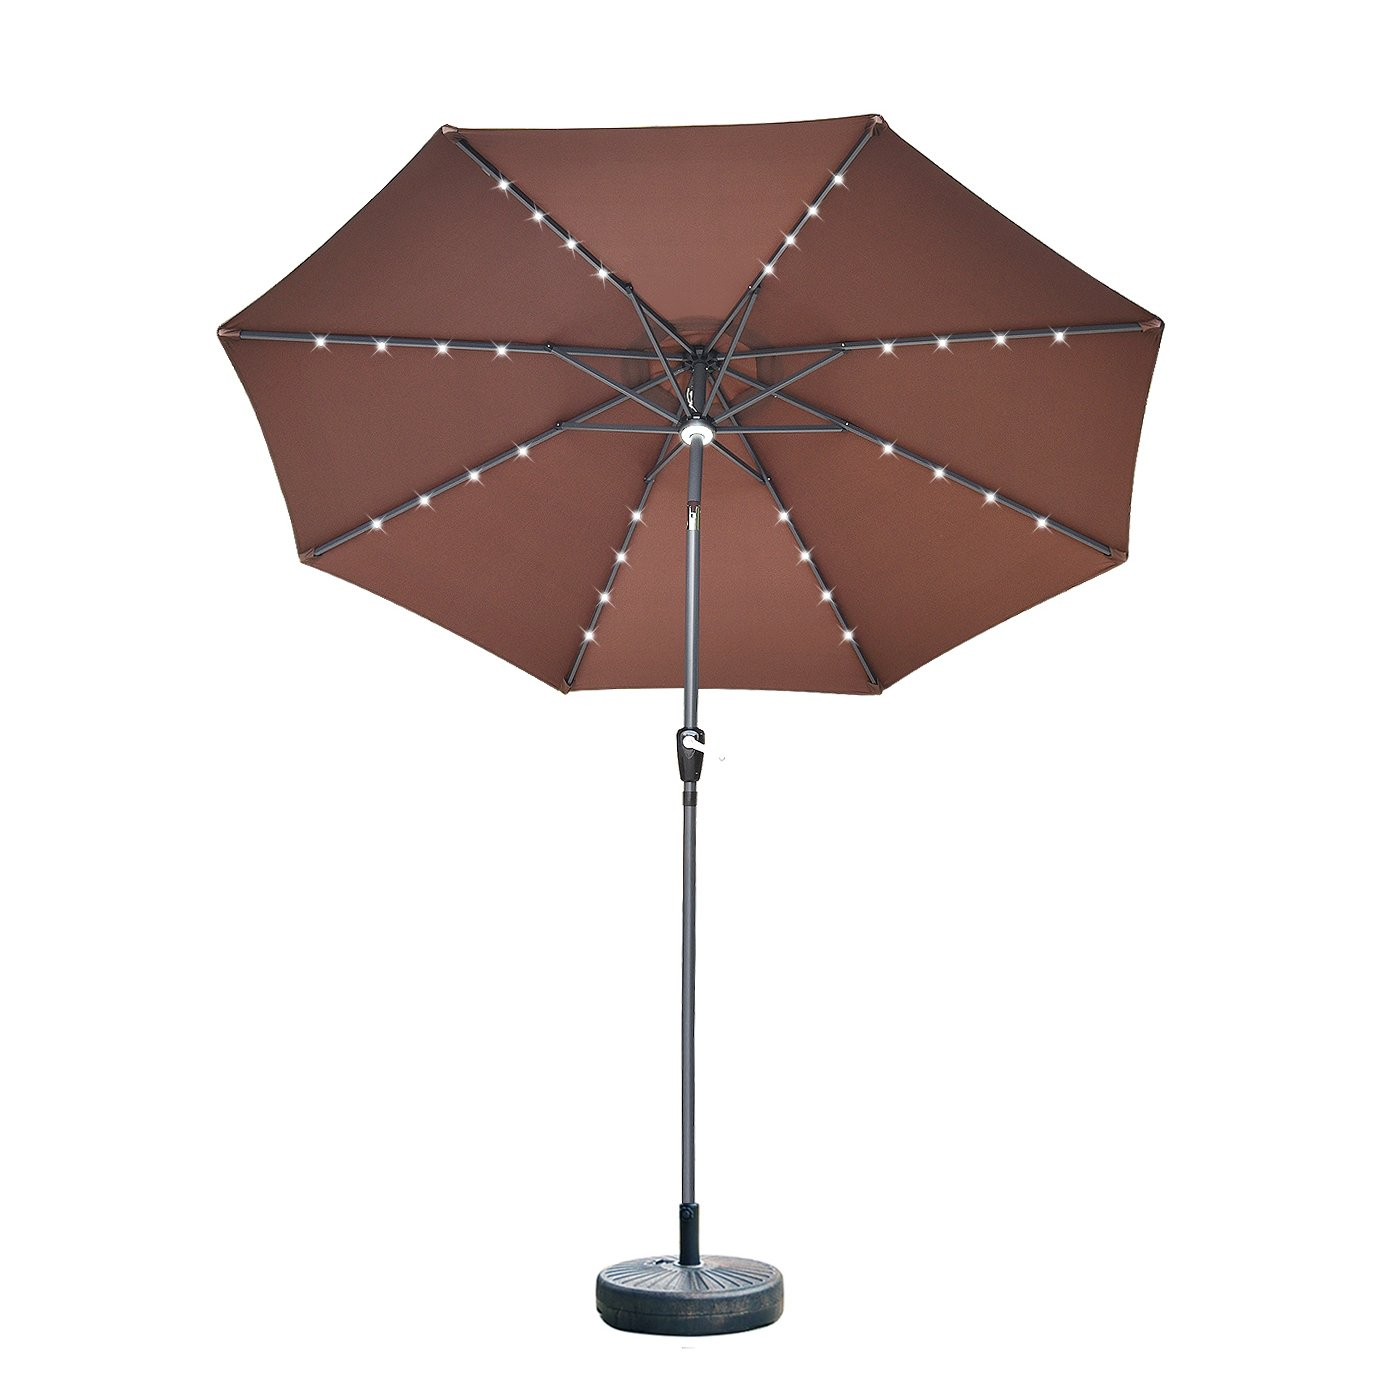 Elecwish 9ft Outdoor Patio Umbrella, with 32 LED Solar Lights and Central Hub Light, 3 Dimming Modes, Tilting and Crank, Waterproof Polyester Canopy, PA Coating and 98% UV Protection - Beige